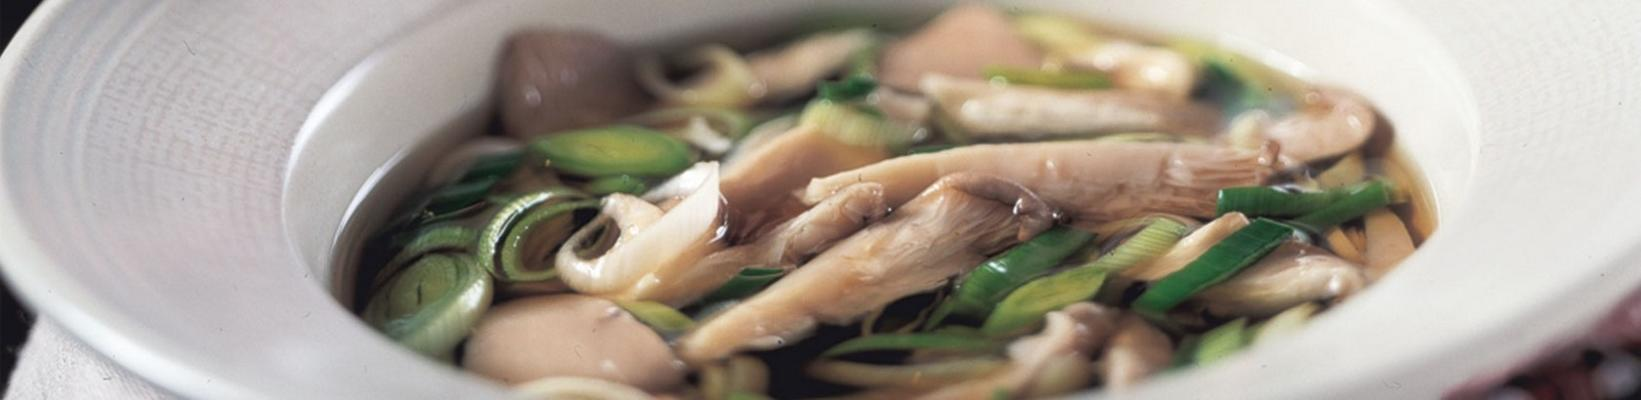 chicken broth with mushrooms and leek rings